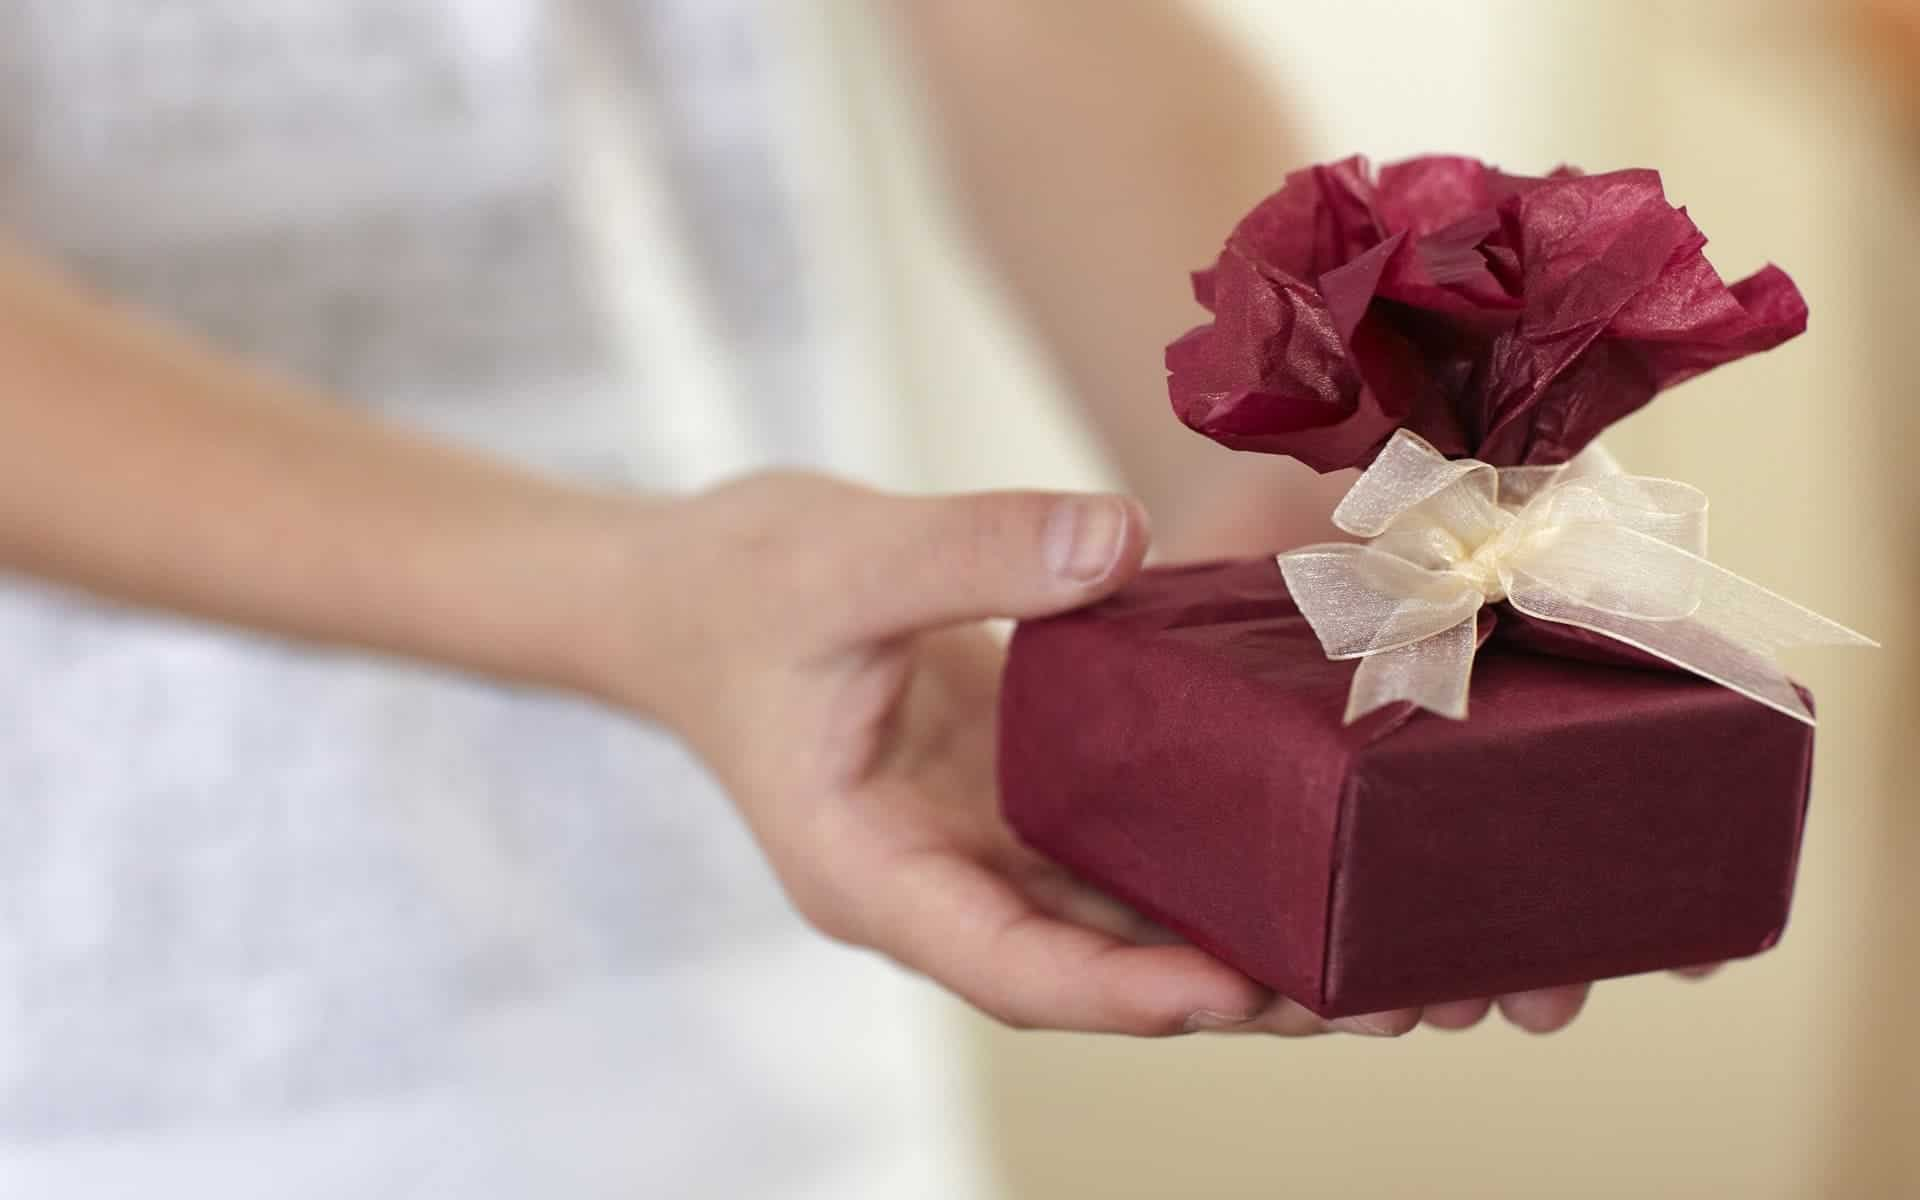 Even small gifts can convince customers to buy, new study reveals